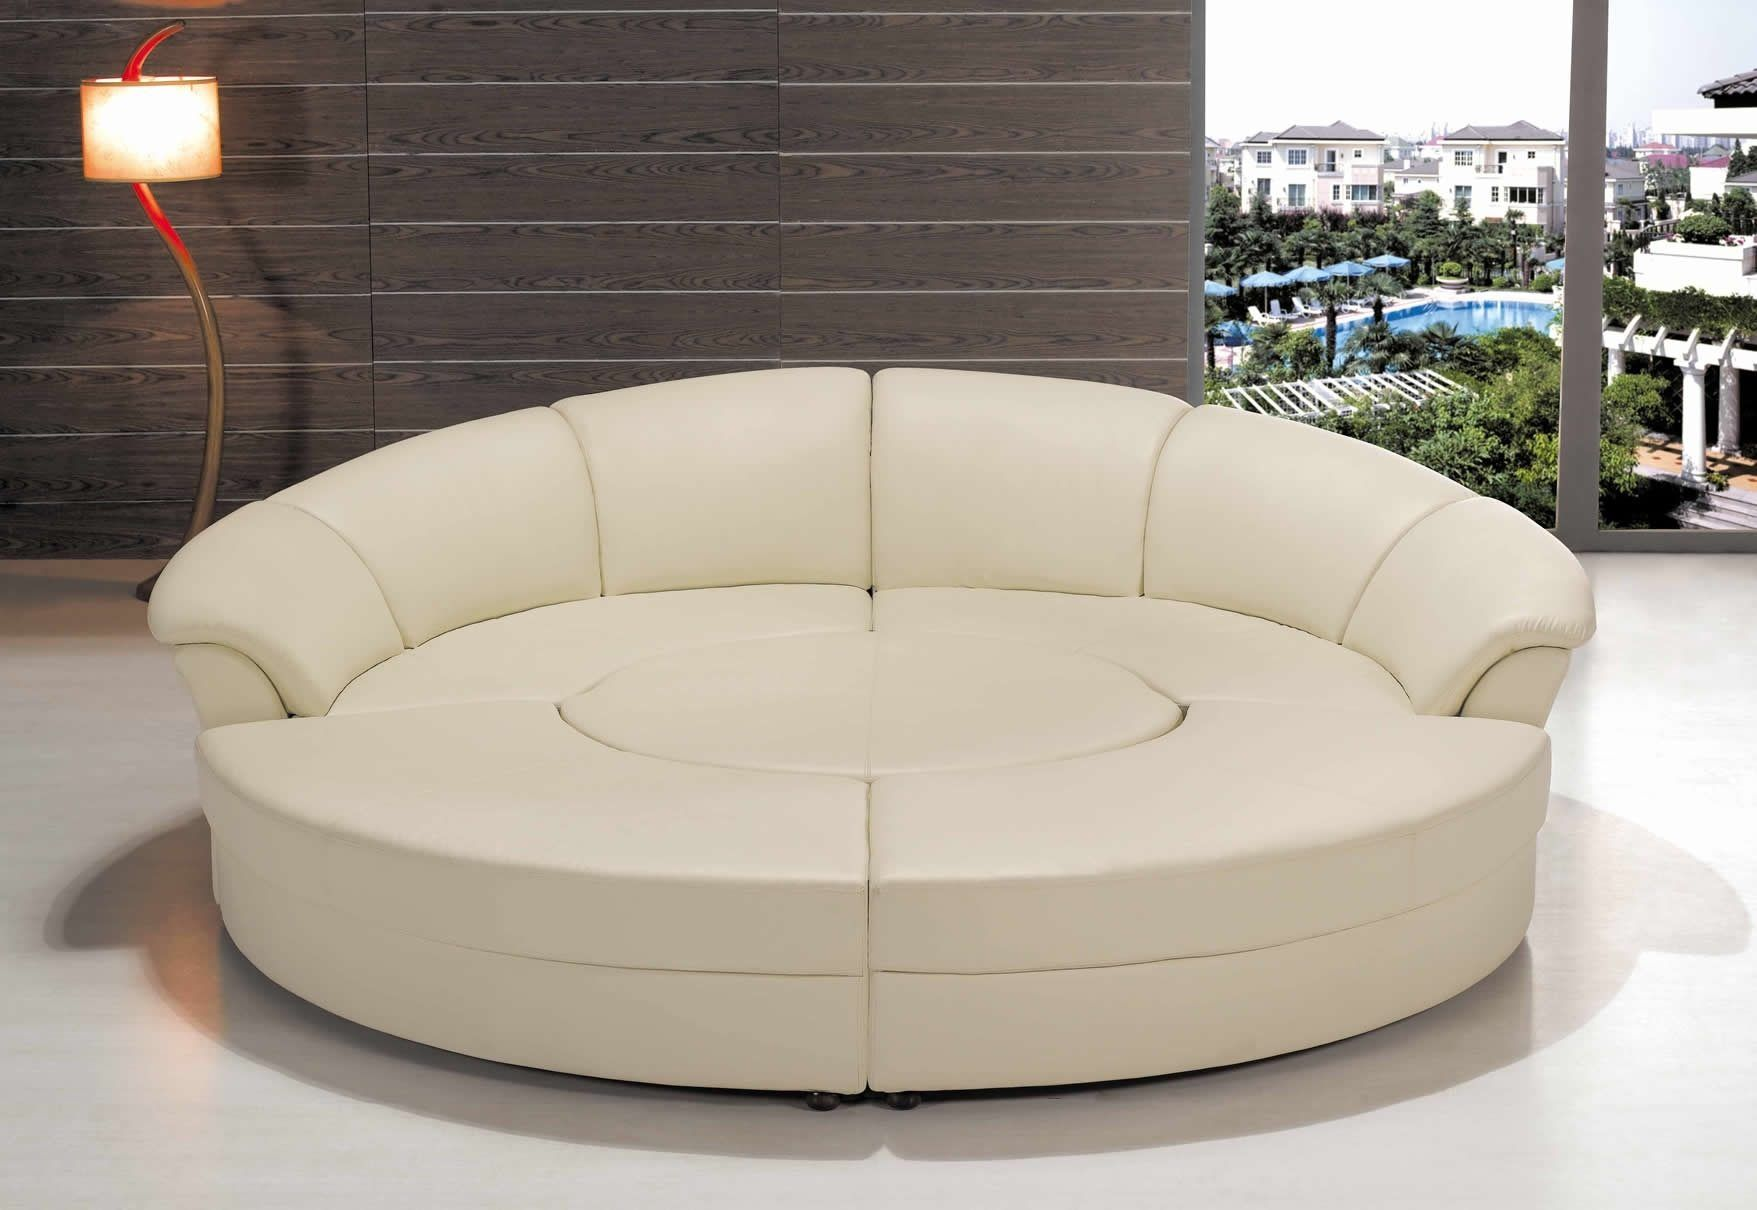 semi circular sectional sofa 2 - Semi Circular Sofa Uk sofa : round sectional sofa - Sectionals, Sofas & Couches